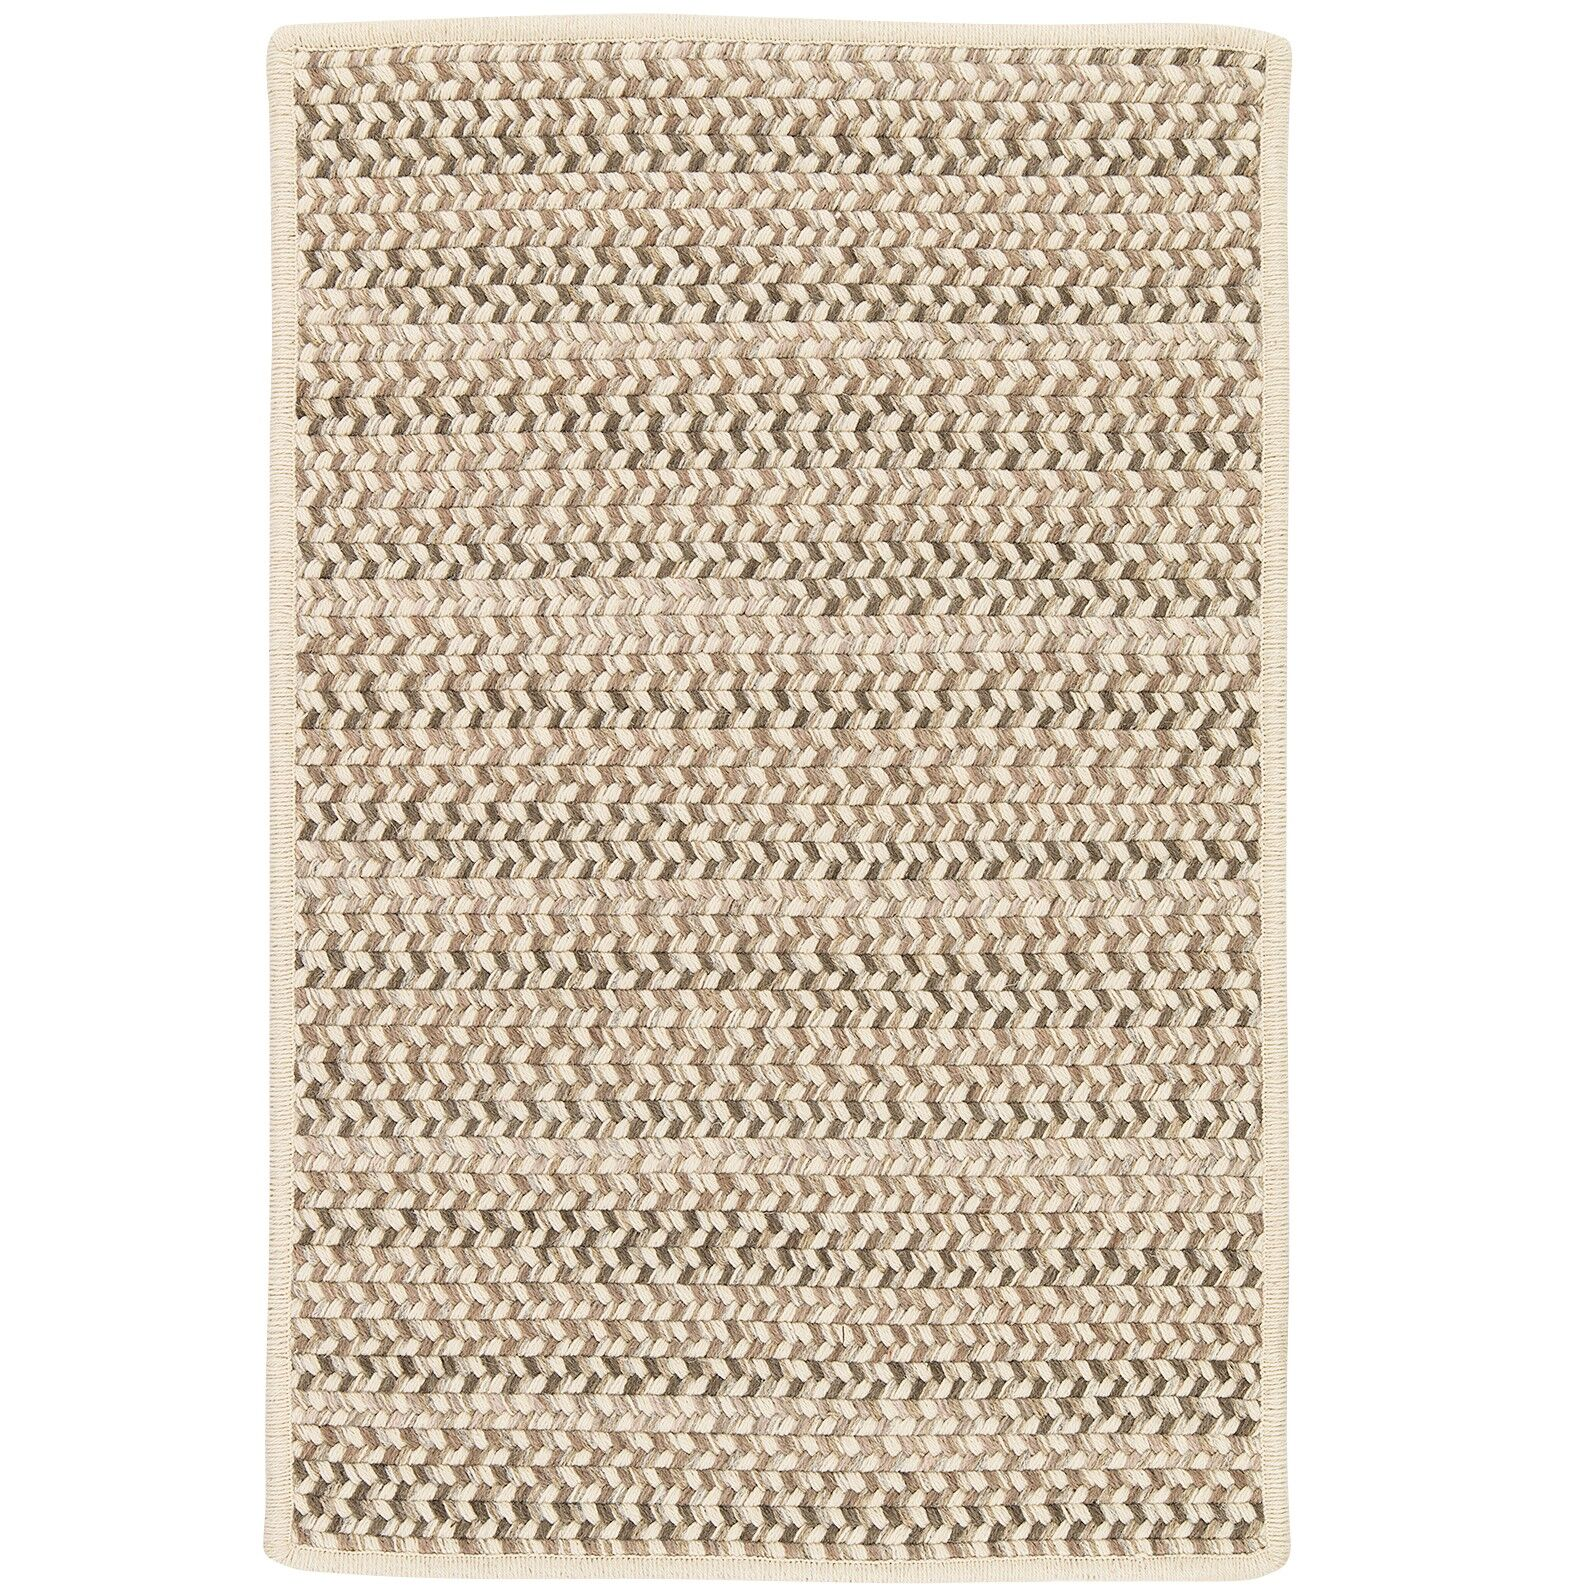 Arvie Striped Hand-Woven Natural Area Rug Rug Size: Rectangle 2' x 4'